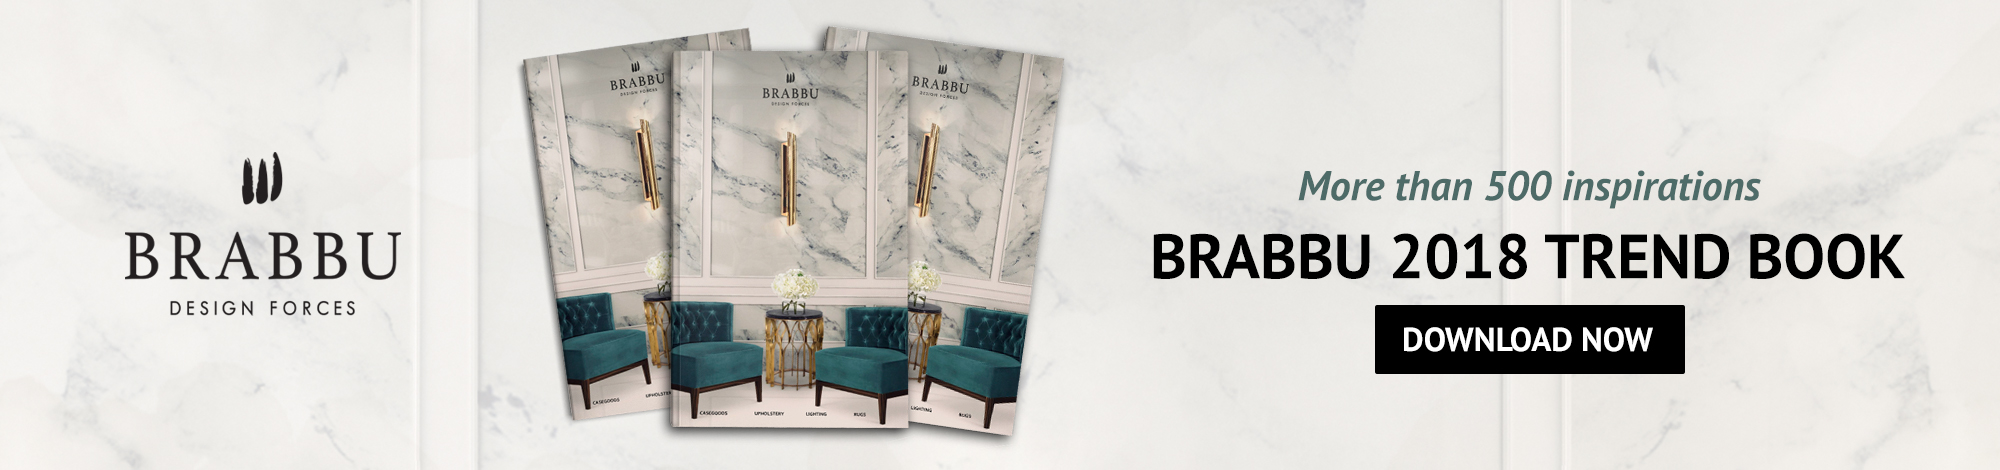 BRABBU Catalogue these white walls How These White Walls is Changing the World of Interior Design  1C5EB82328DCFD5BD10428DB124BD945082C079483CACCDD2D pimgpsh fullsize distr